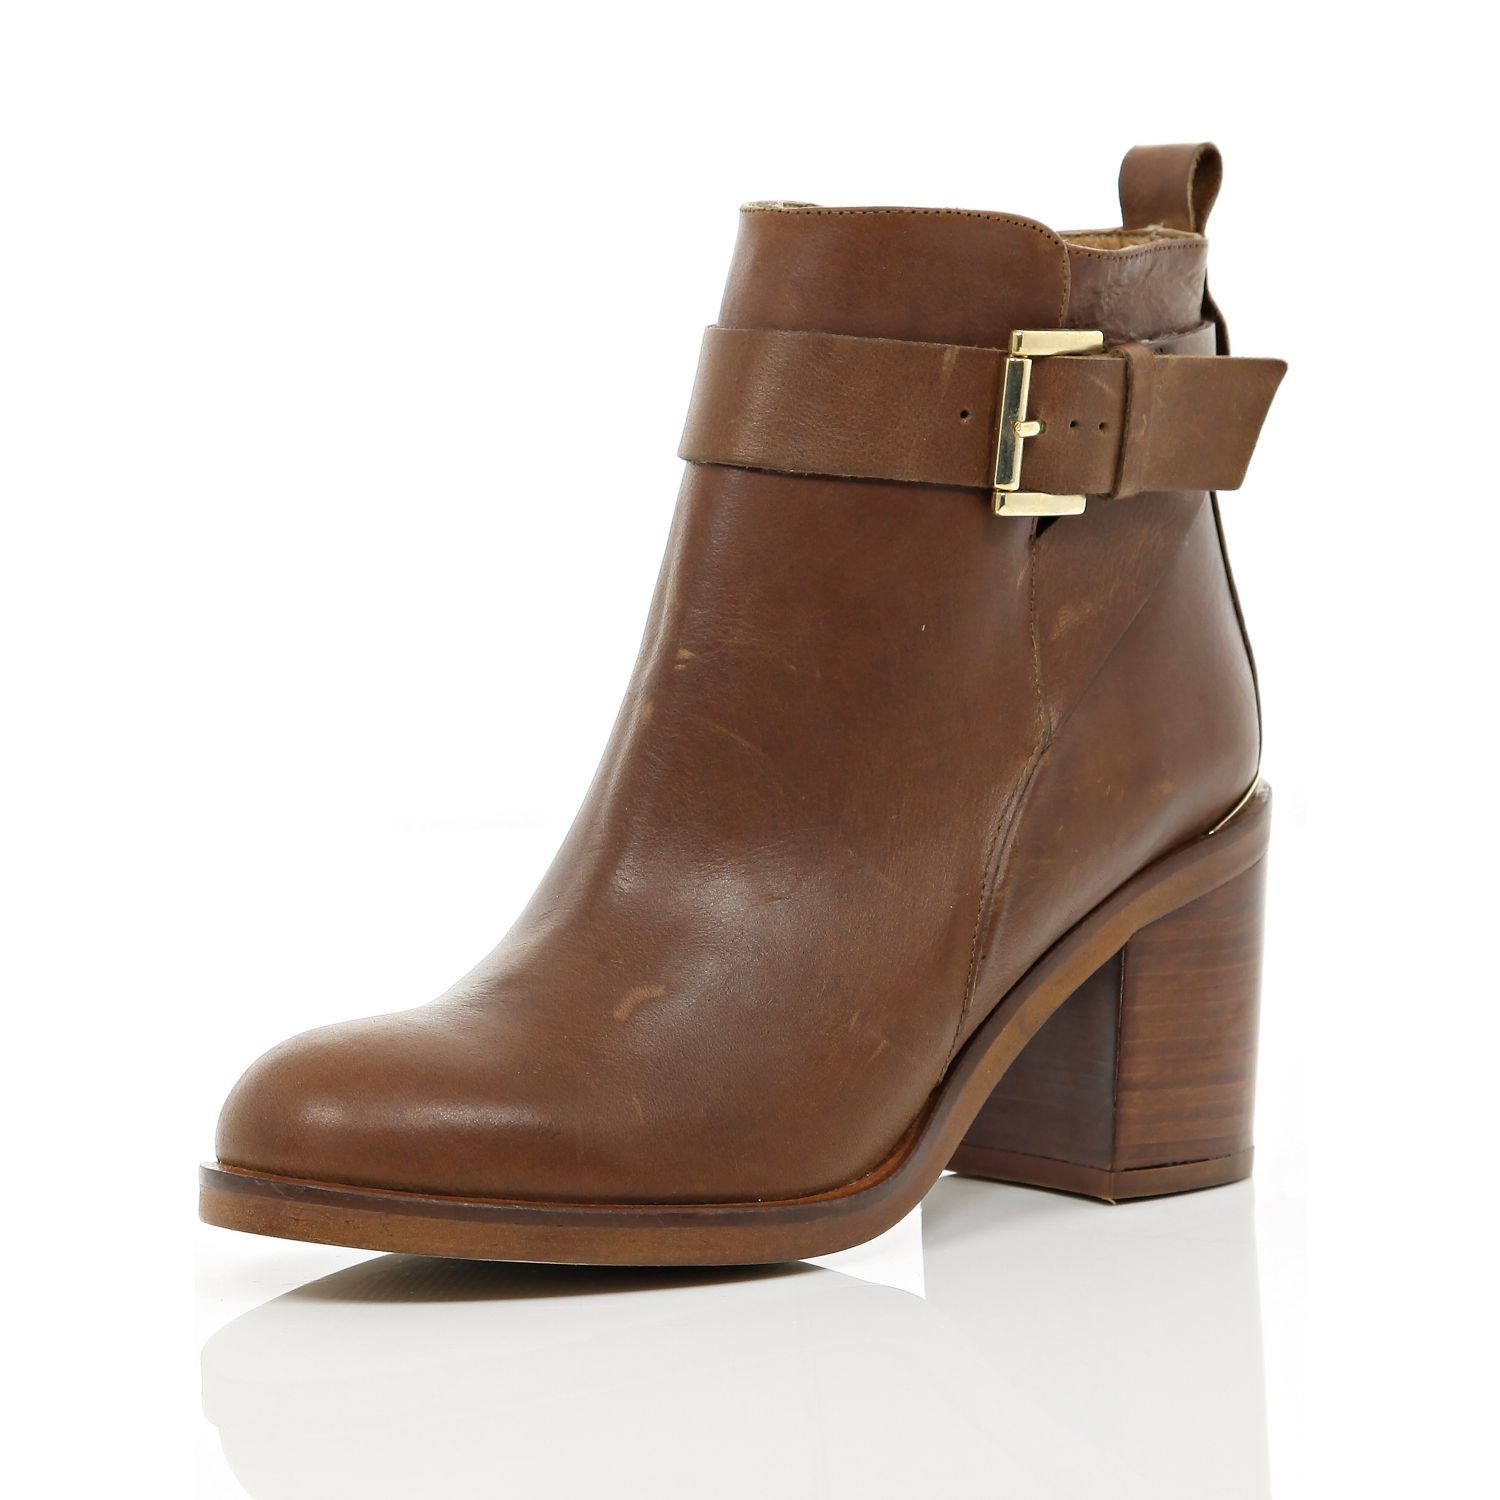 Buy the latest brown ankle boots heel cheap shop fashion style with free shipping, and check out our daily updated new arrival brown ankle boots heel at thritingetqay.cf Plus Size Back Zip Chunky Heel Ankle Boots - CAMEL BROWN - EU USD 3 Colors. Lacing Suede Short Chelsea Boots - CAMEL BROWN - EU USD 2 Colors.